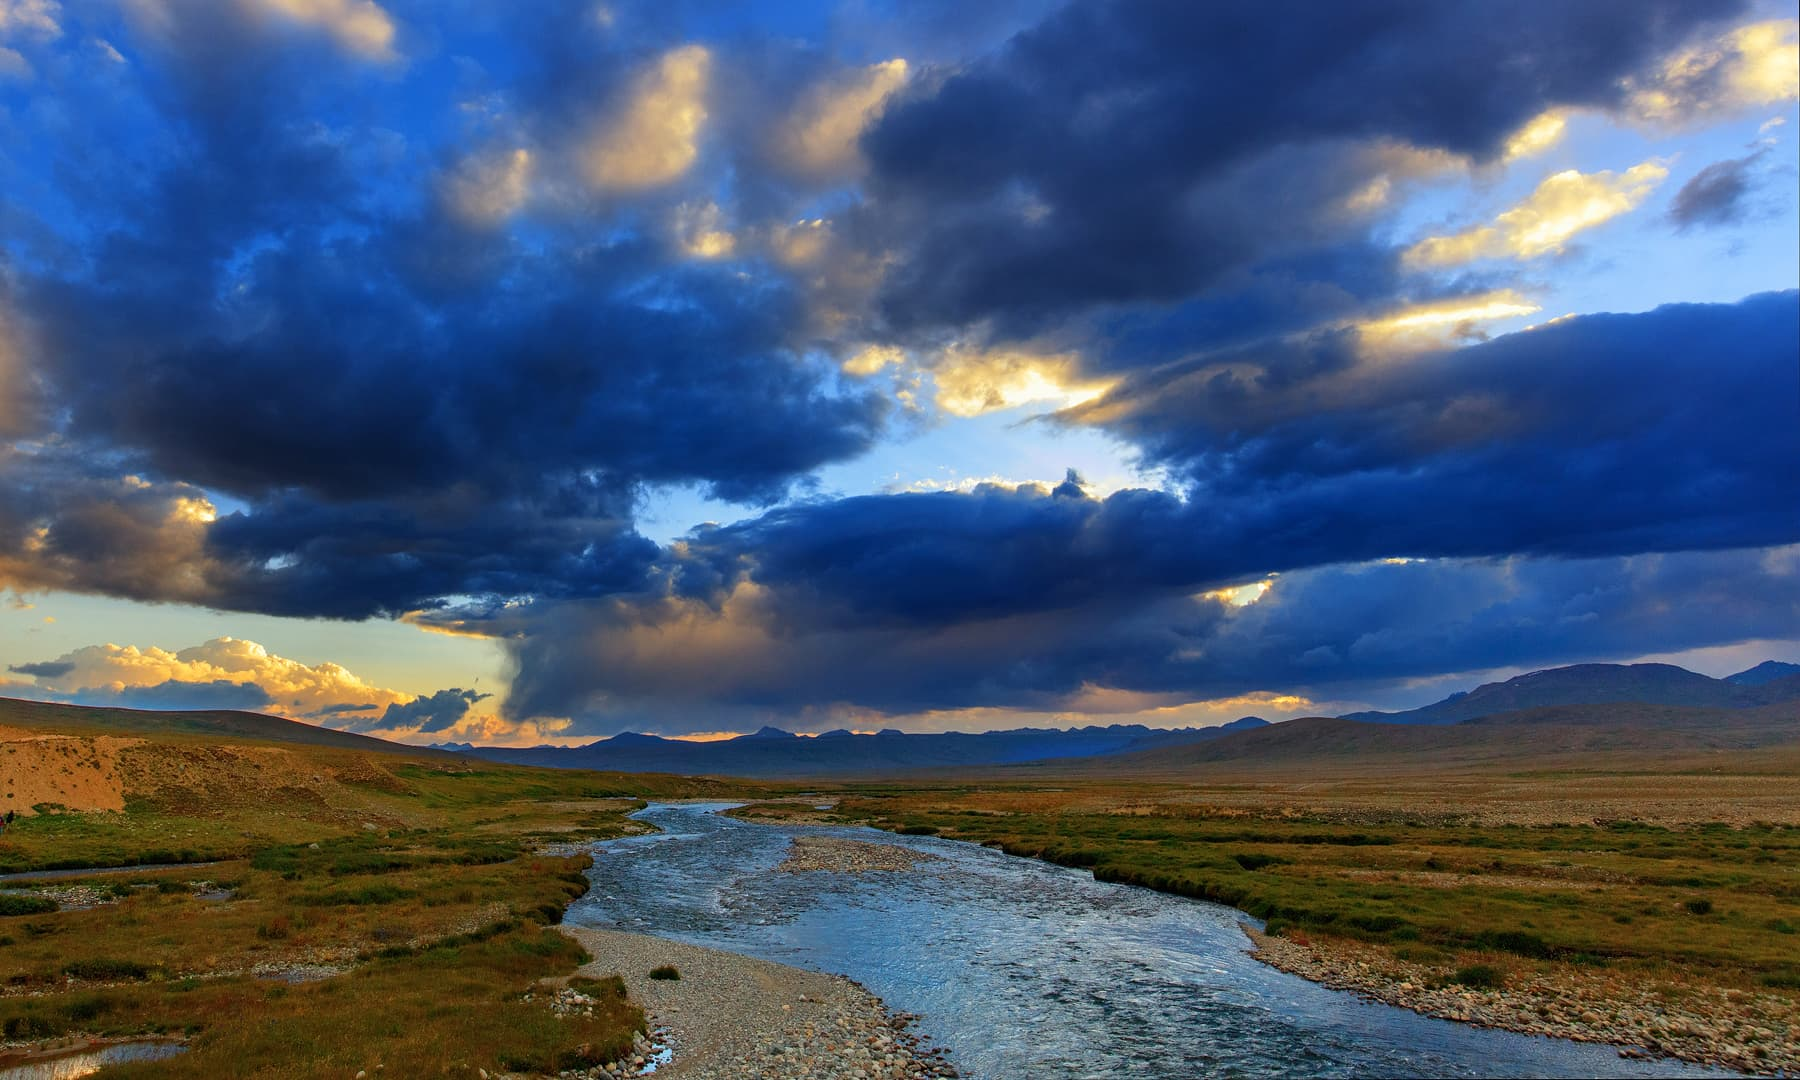 The last rays of sunshine in Deosai bathes the surrounding plains in a golden light.